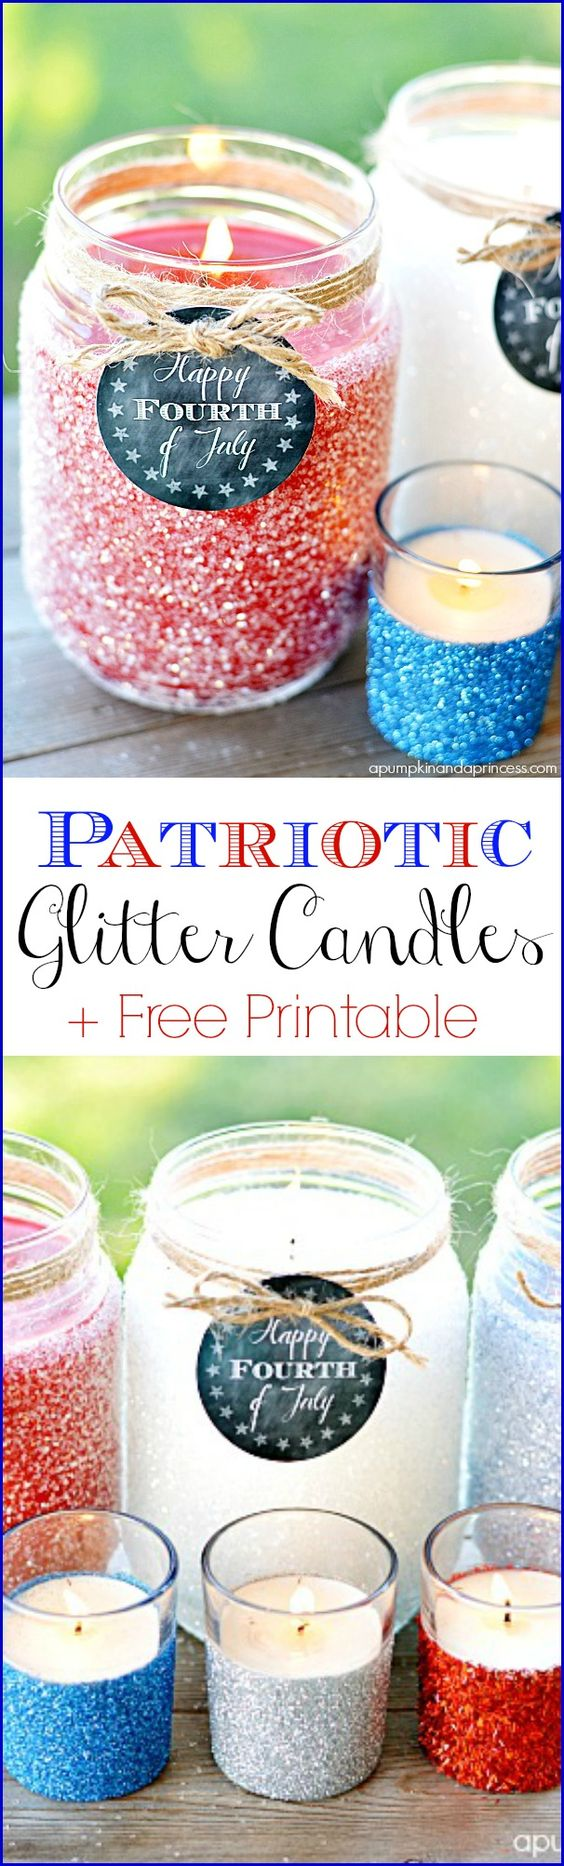 Patriotic Glitter Candles + Free Printable Tags: